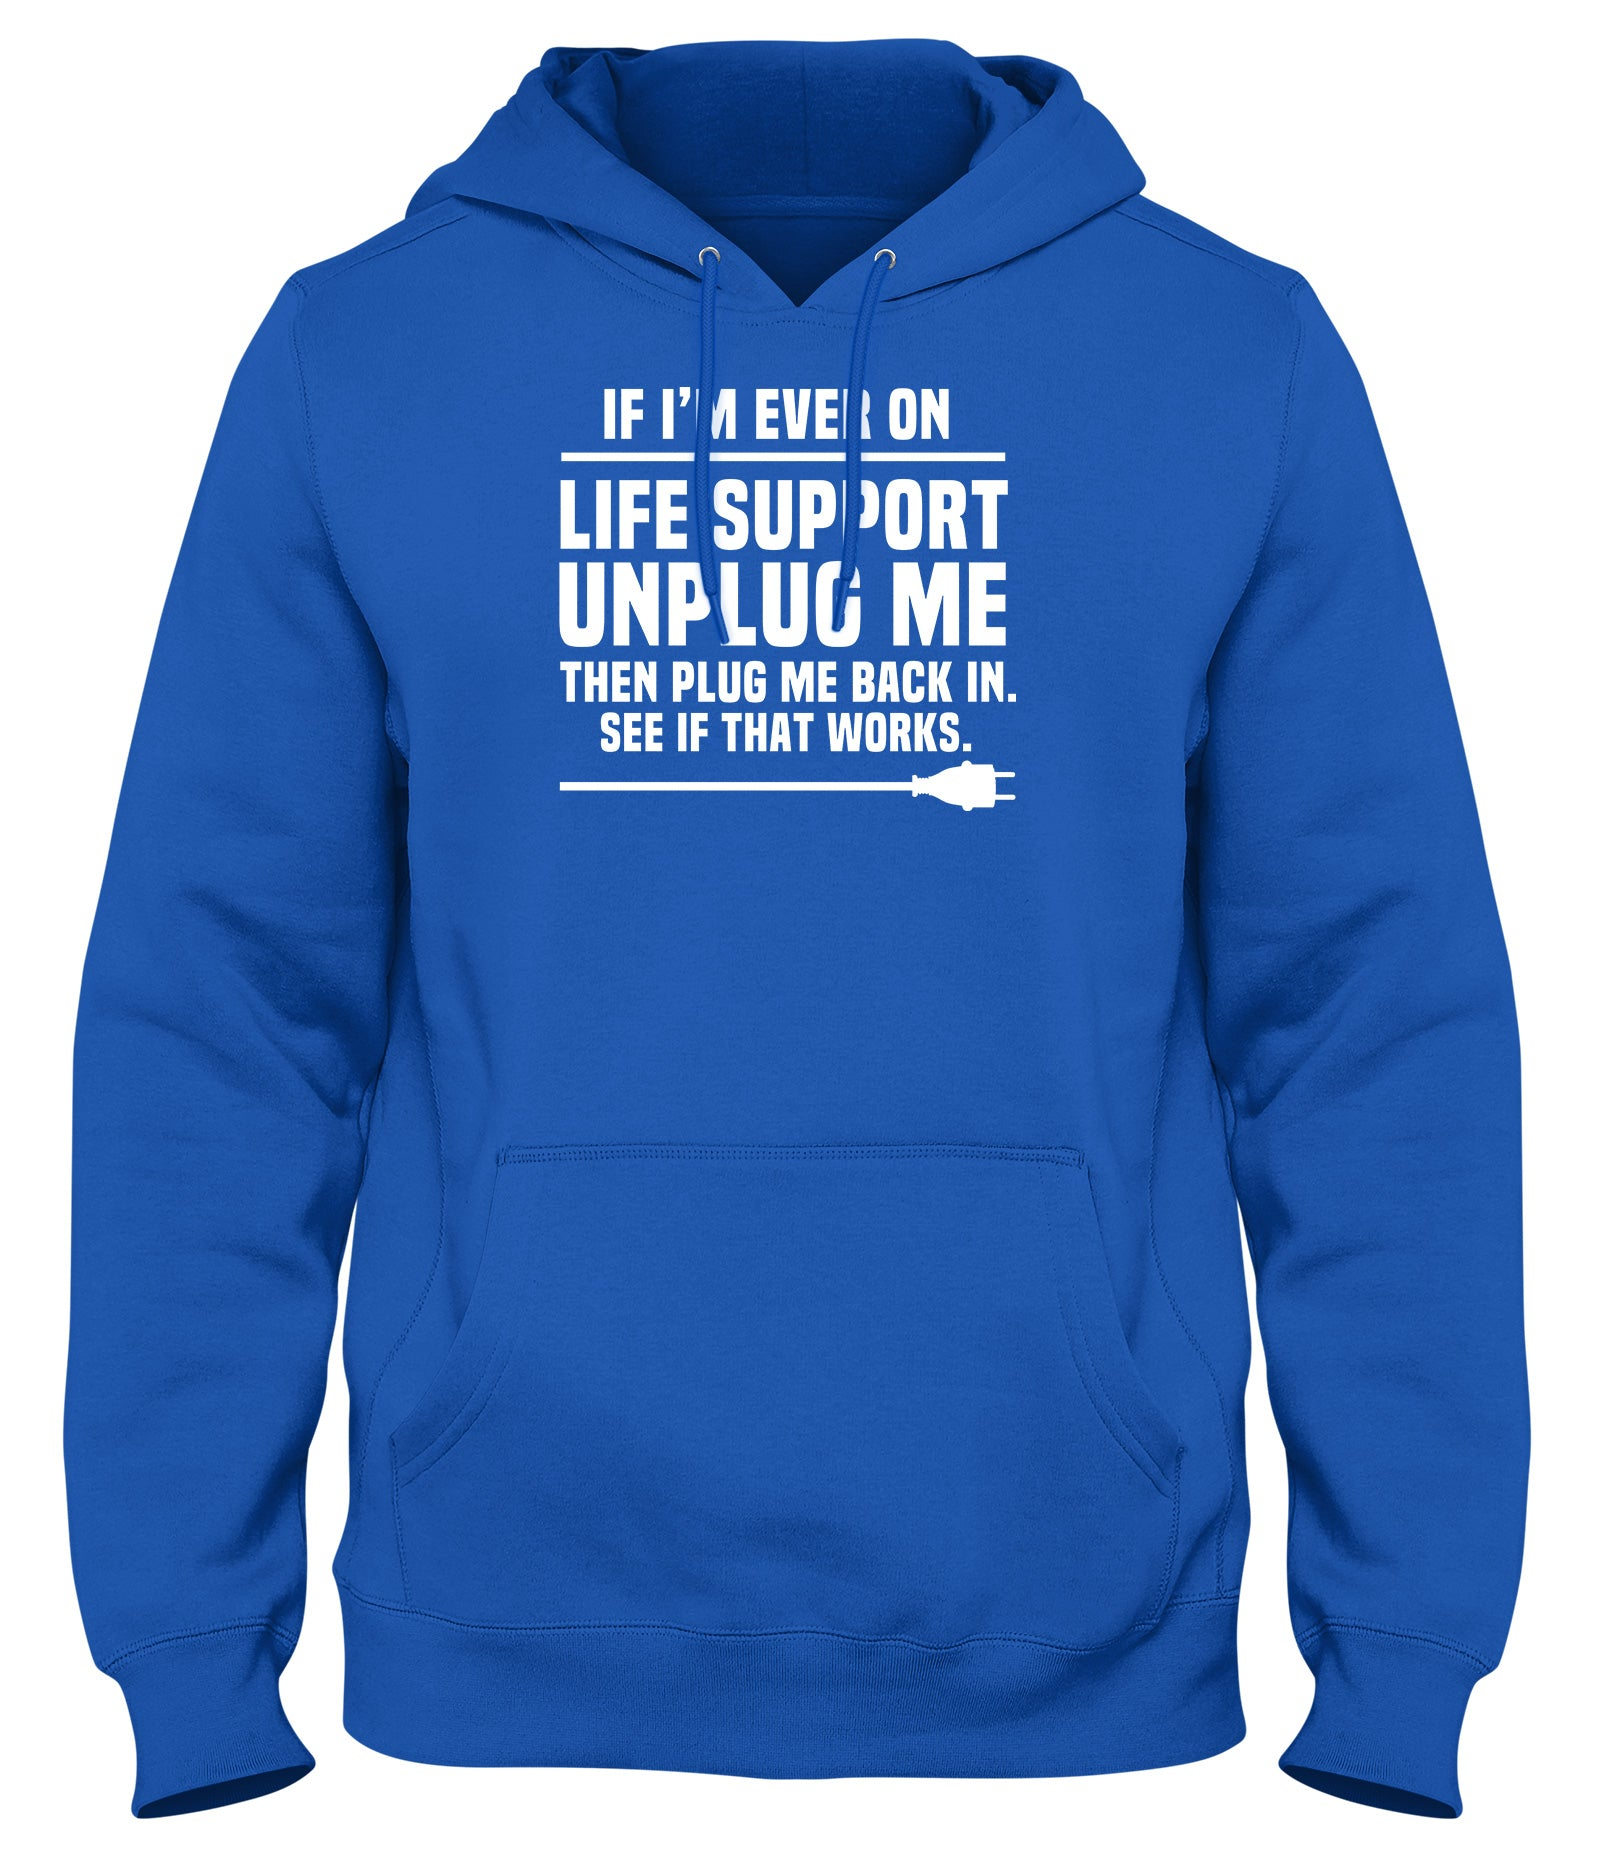 IF I'M EVER ON LIFE SUPPORT UNPLUG ME AND PLUG ME BACK IN SEE IF THAT WORKS MENS WOMENS LADIES UNISEX FUNNY SLOGAN HOODIE